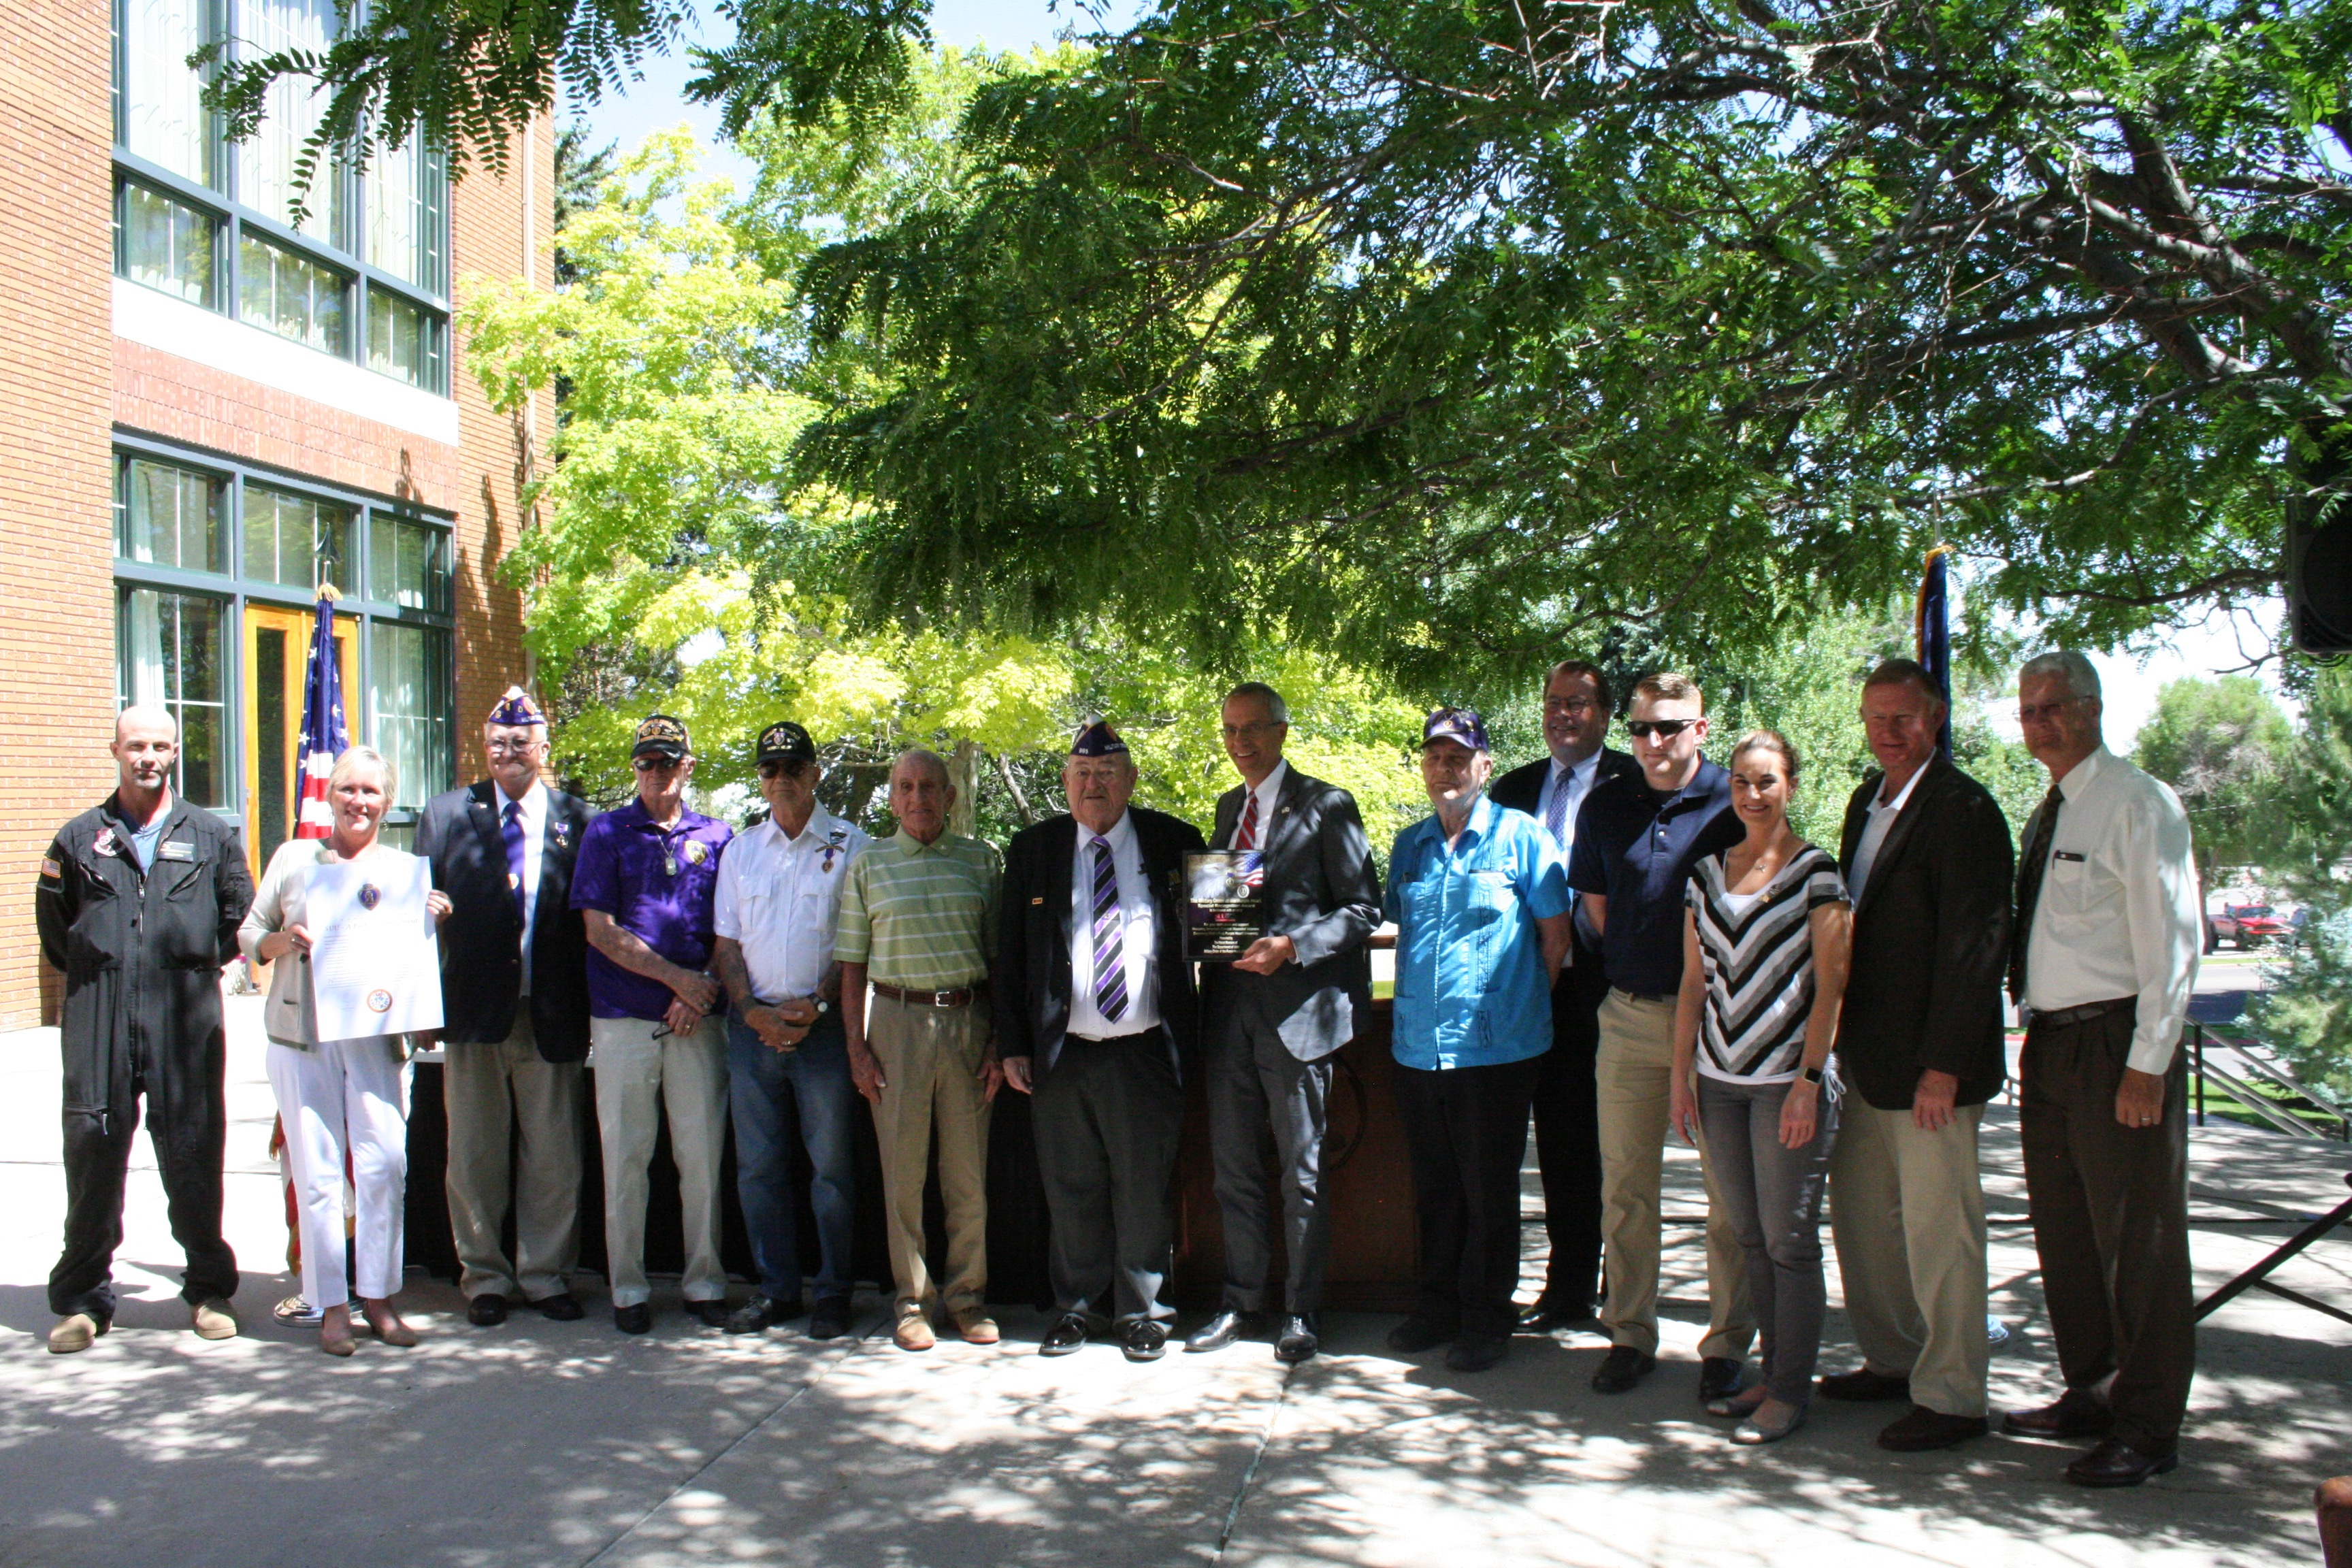 Purple Heart Recipients, SUU Administration and local elected officials join for a photo with the official proclamation, Cedar City, Utah, June 24, 2016 | Photo by Kaleigh Bronson, St. George News / Cedar City News